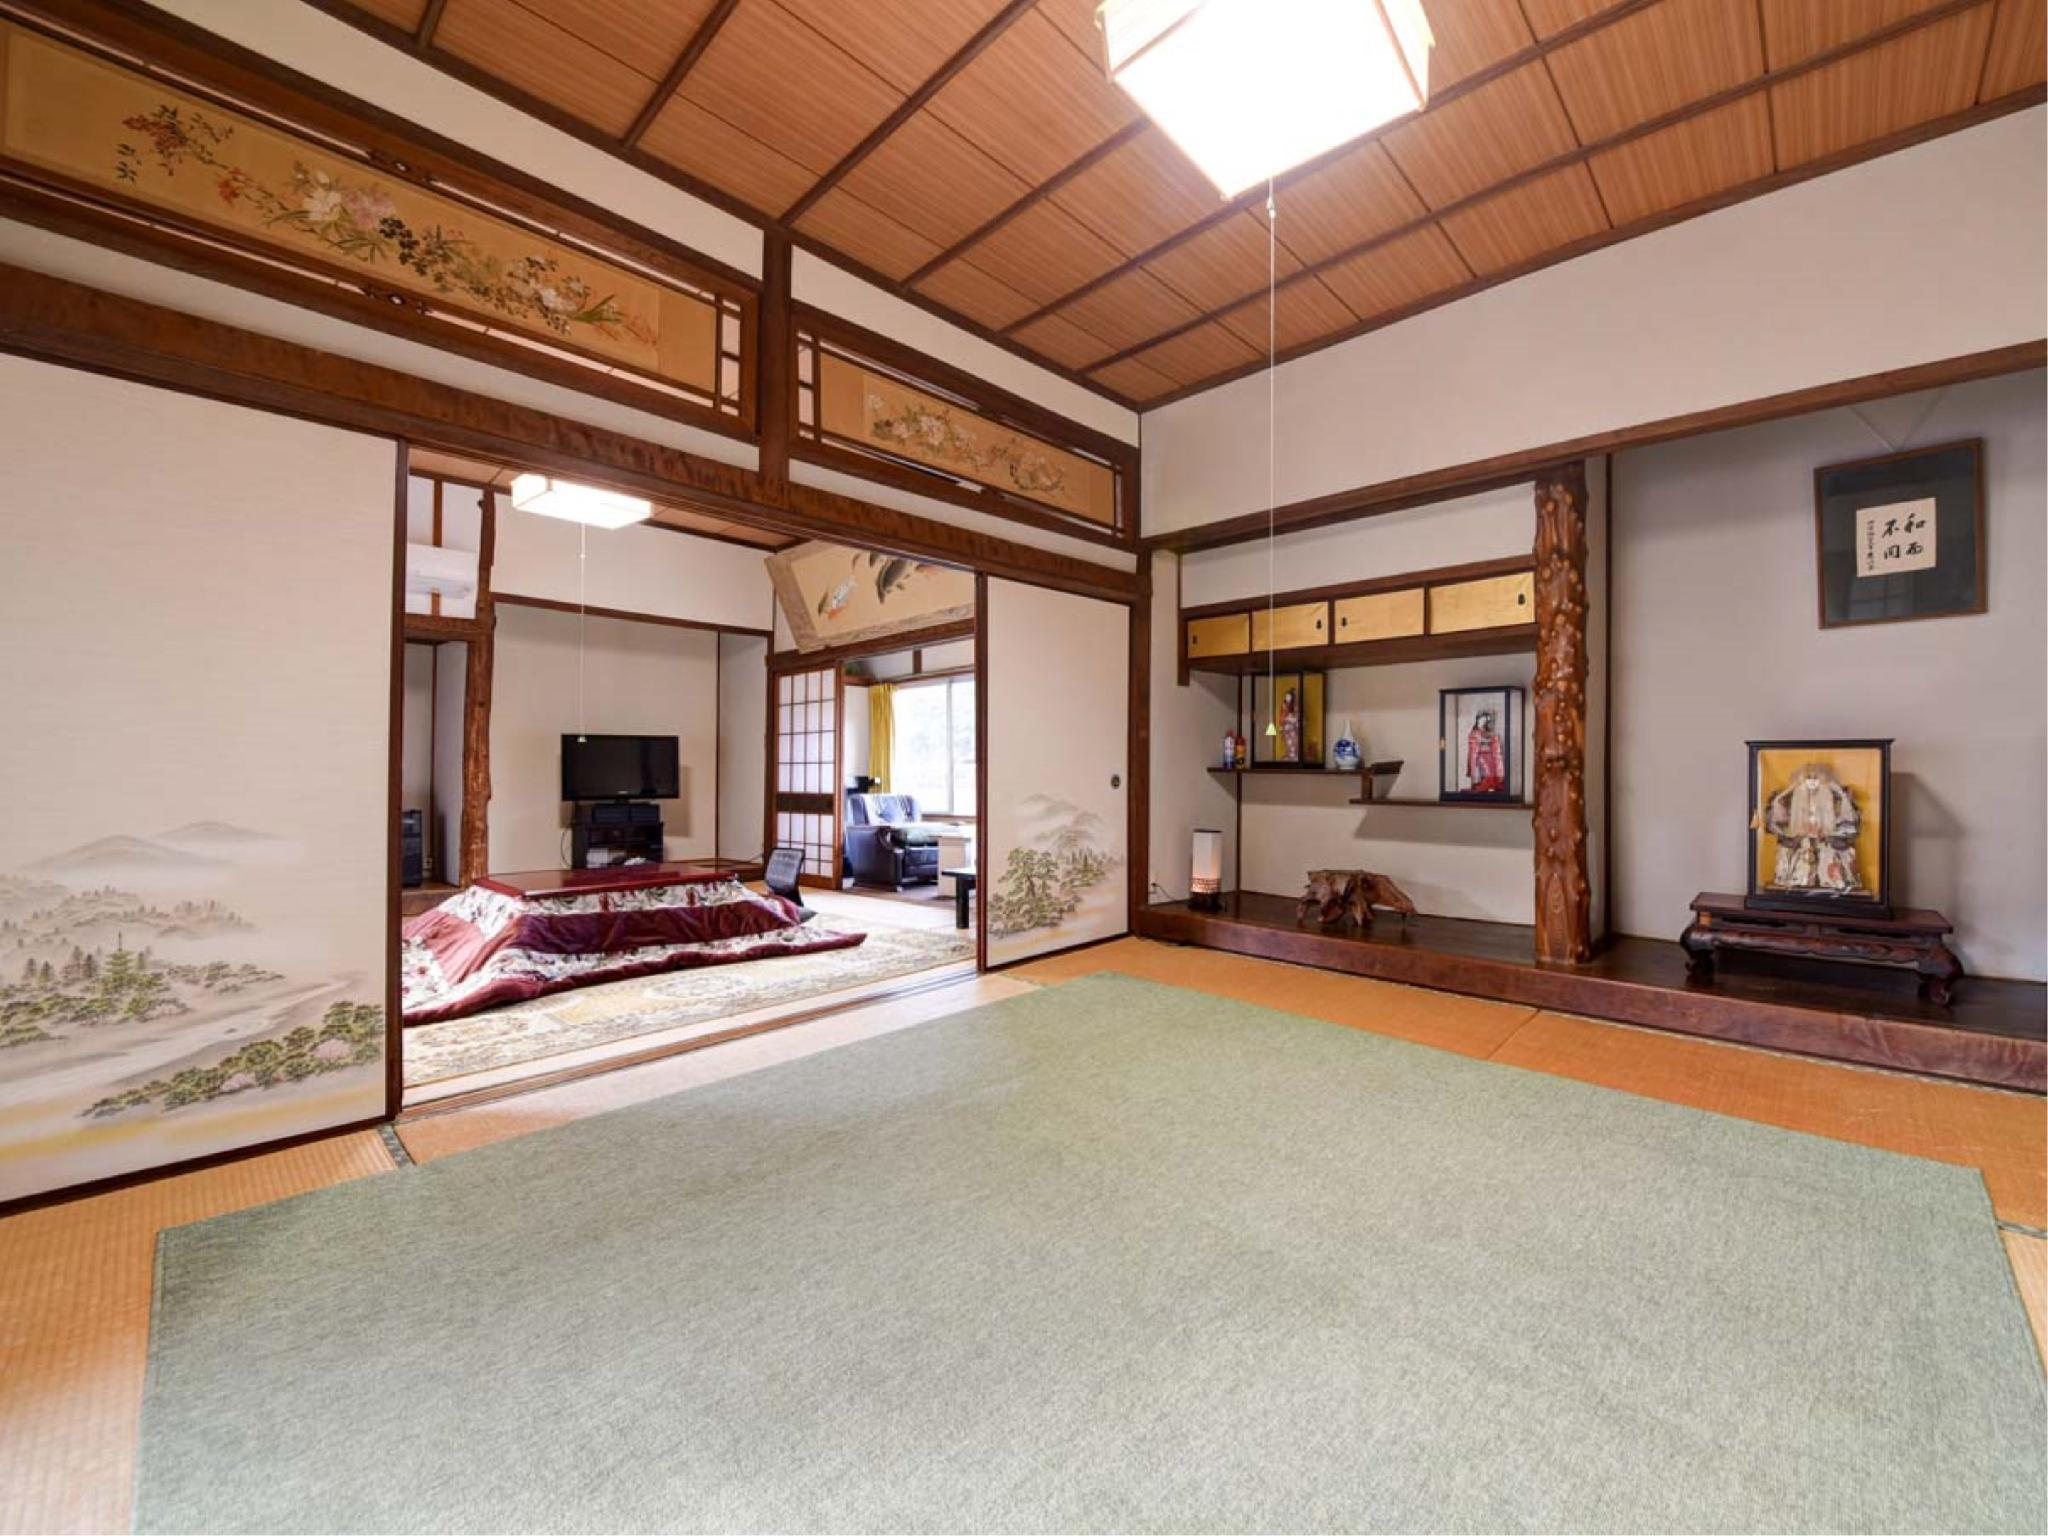 離れ・光陽(2階) (Detached Japanese-style Room (2nd Floor))